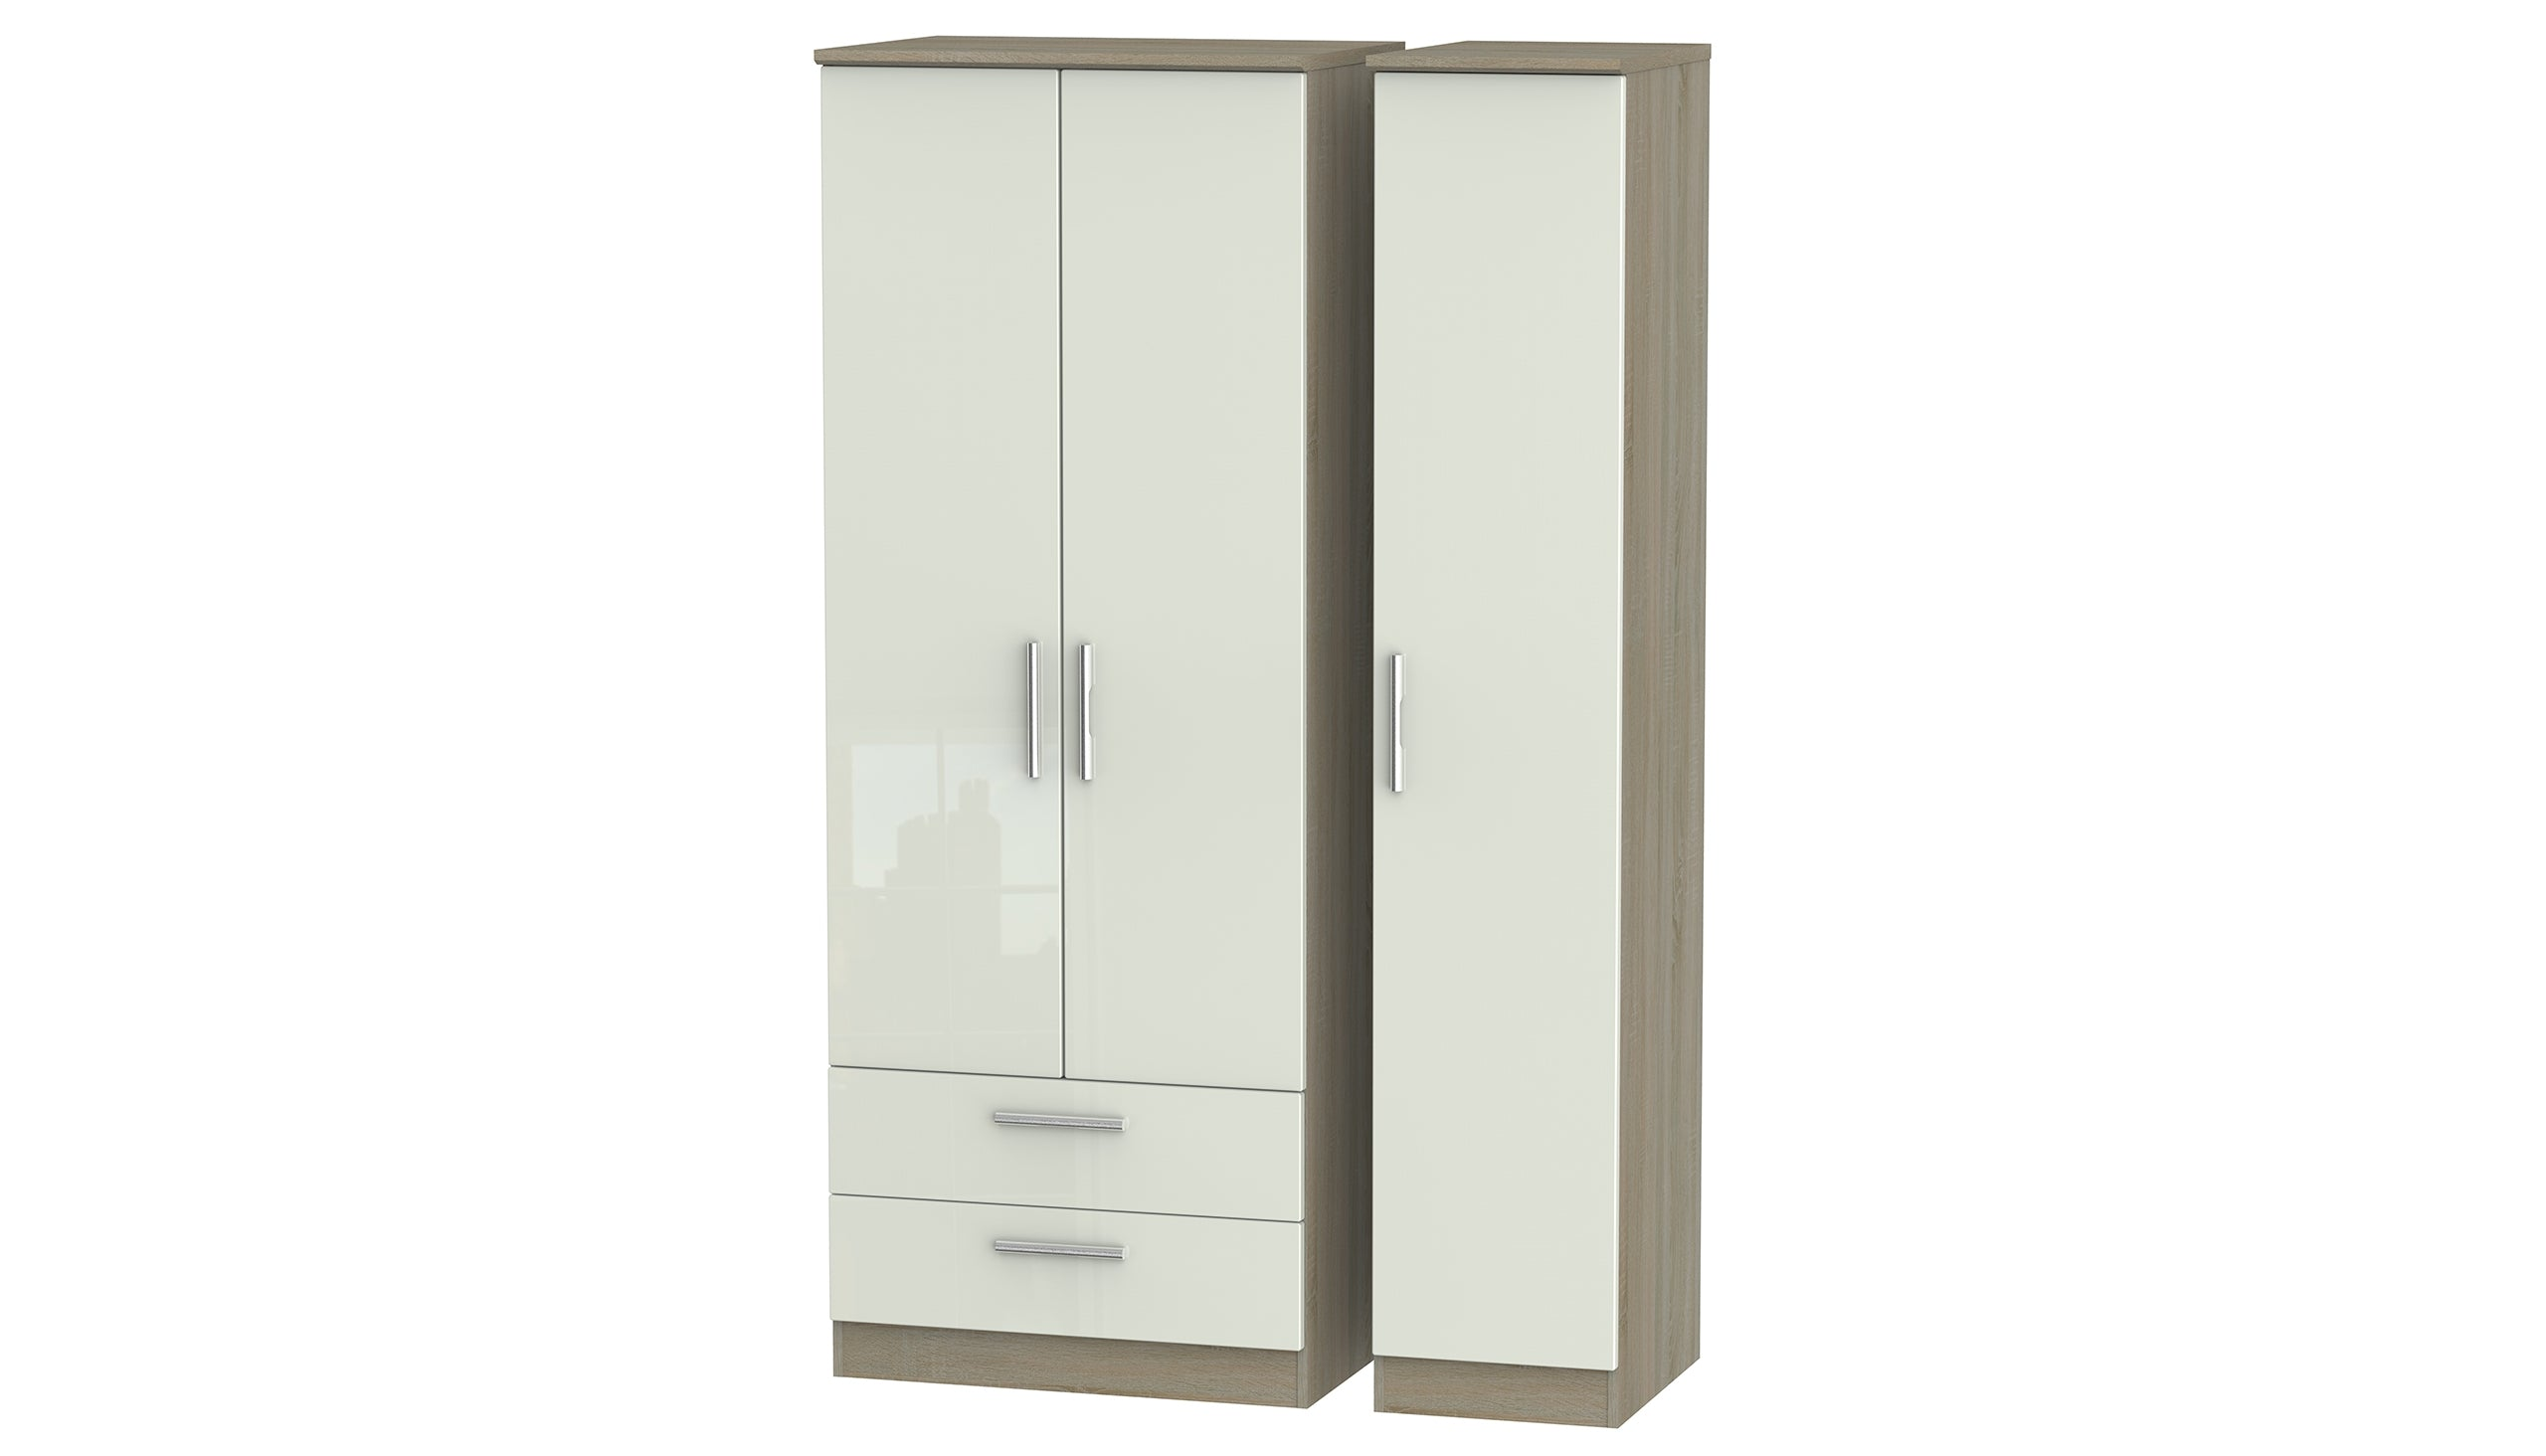 Burnham Tall 3 Door Wardrobe with 2 Drawers - AHF Furniture & Carpets